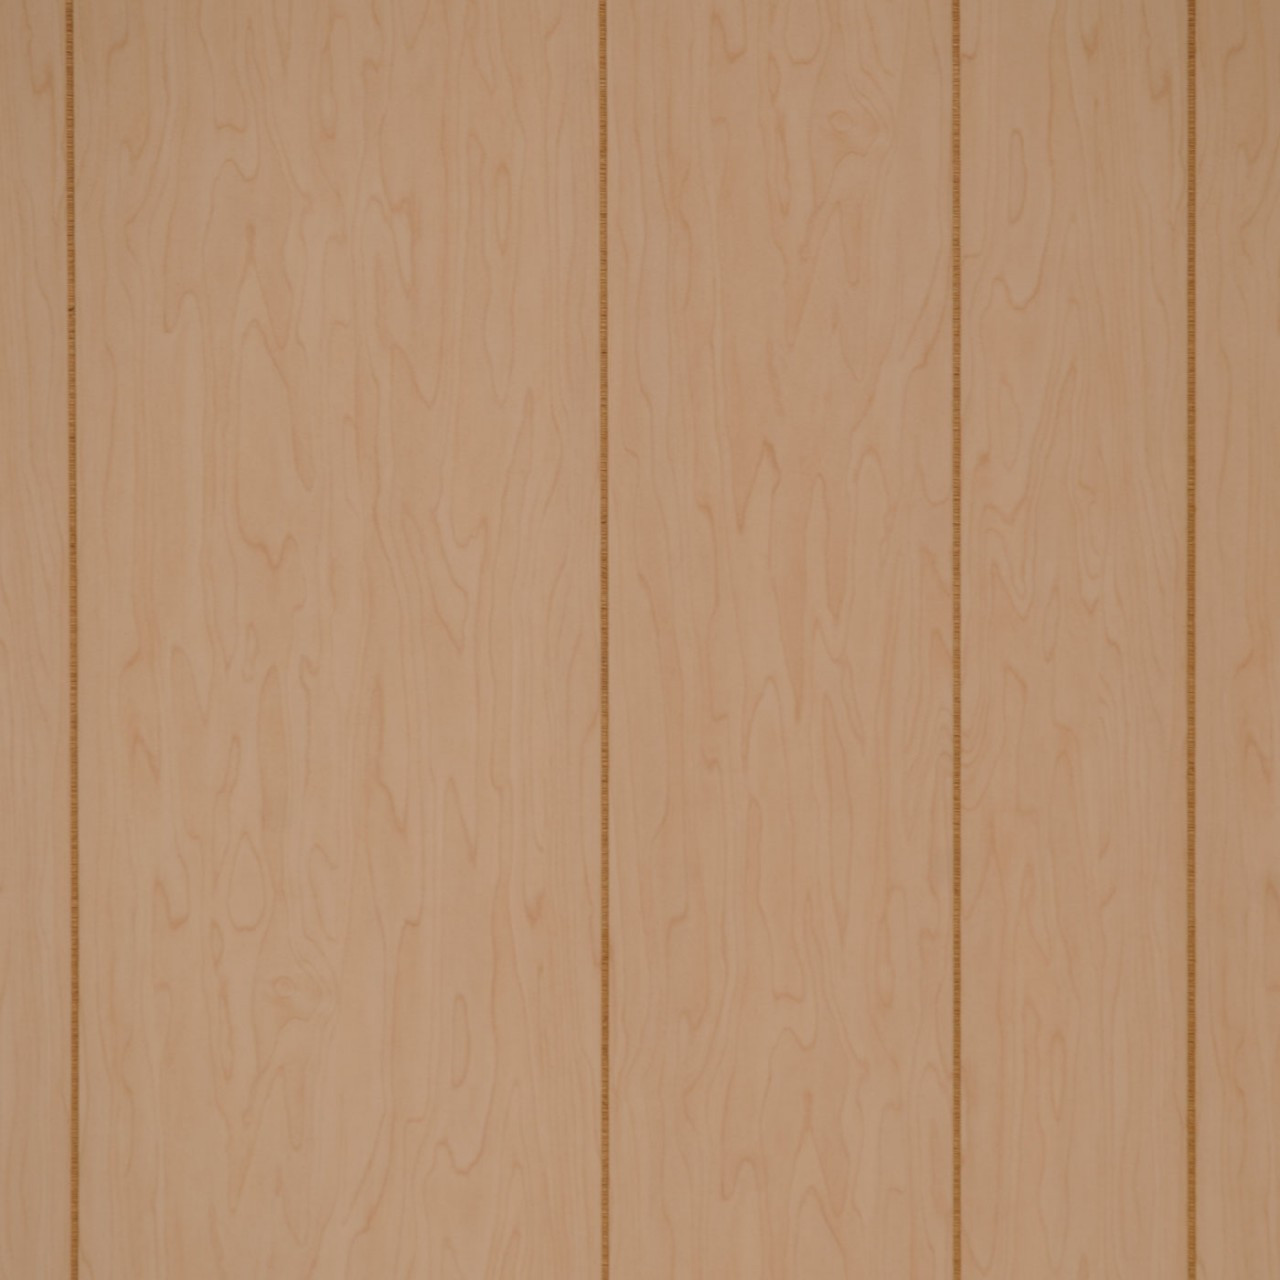 Wood Paneling Brittania Birch Wall Paneling Plywood Panels